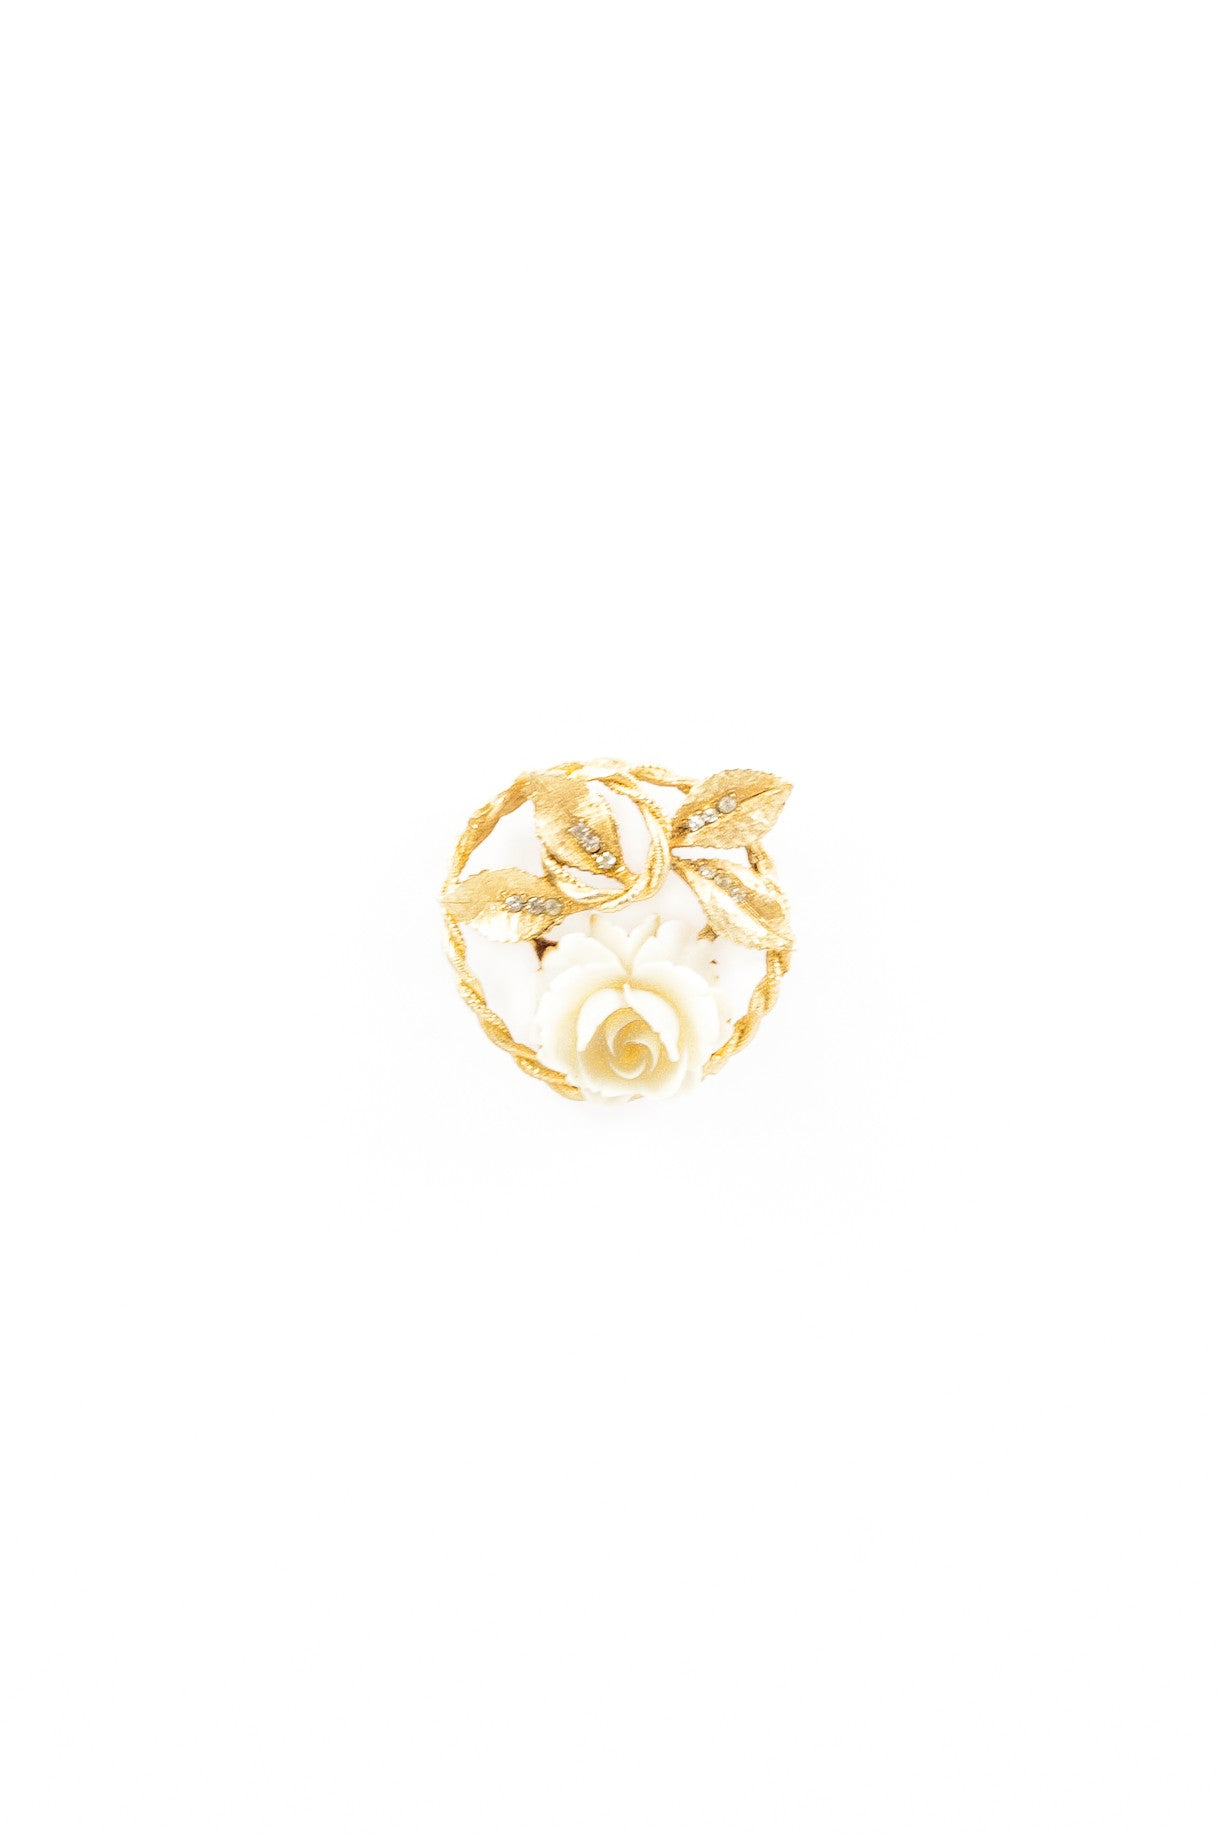 70's__BSK__Twisted Cream Rosette Floral Pin